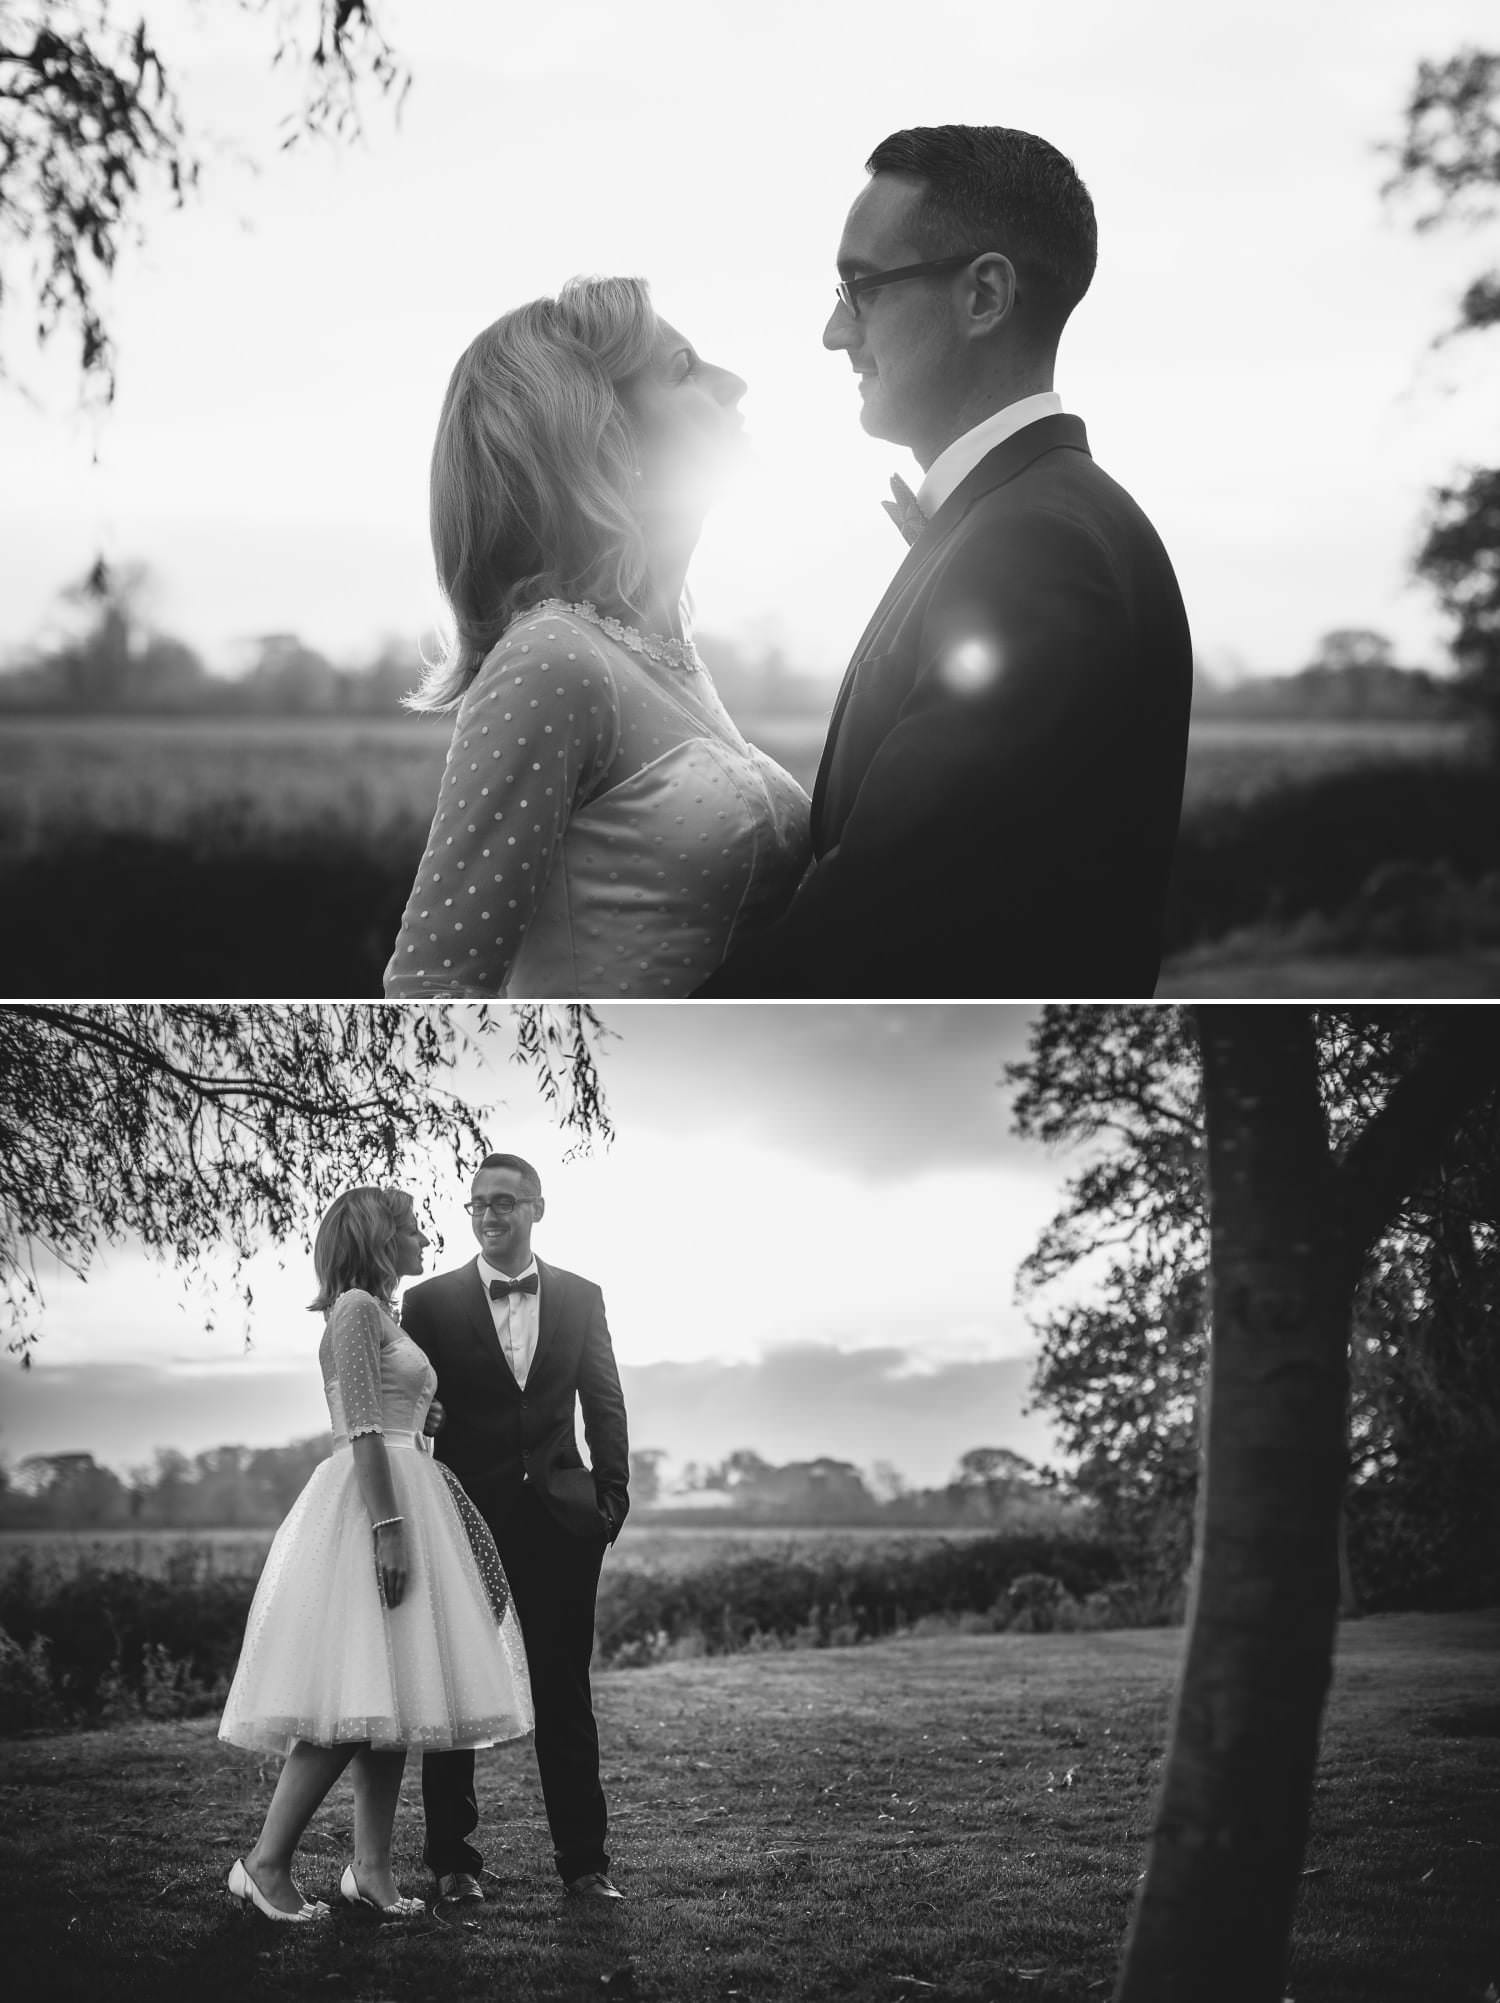 Black and white wedding photography portraits in the grosvenor pulford gardens in Chester